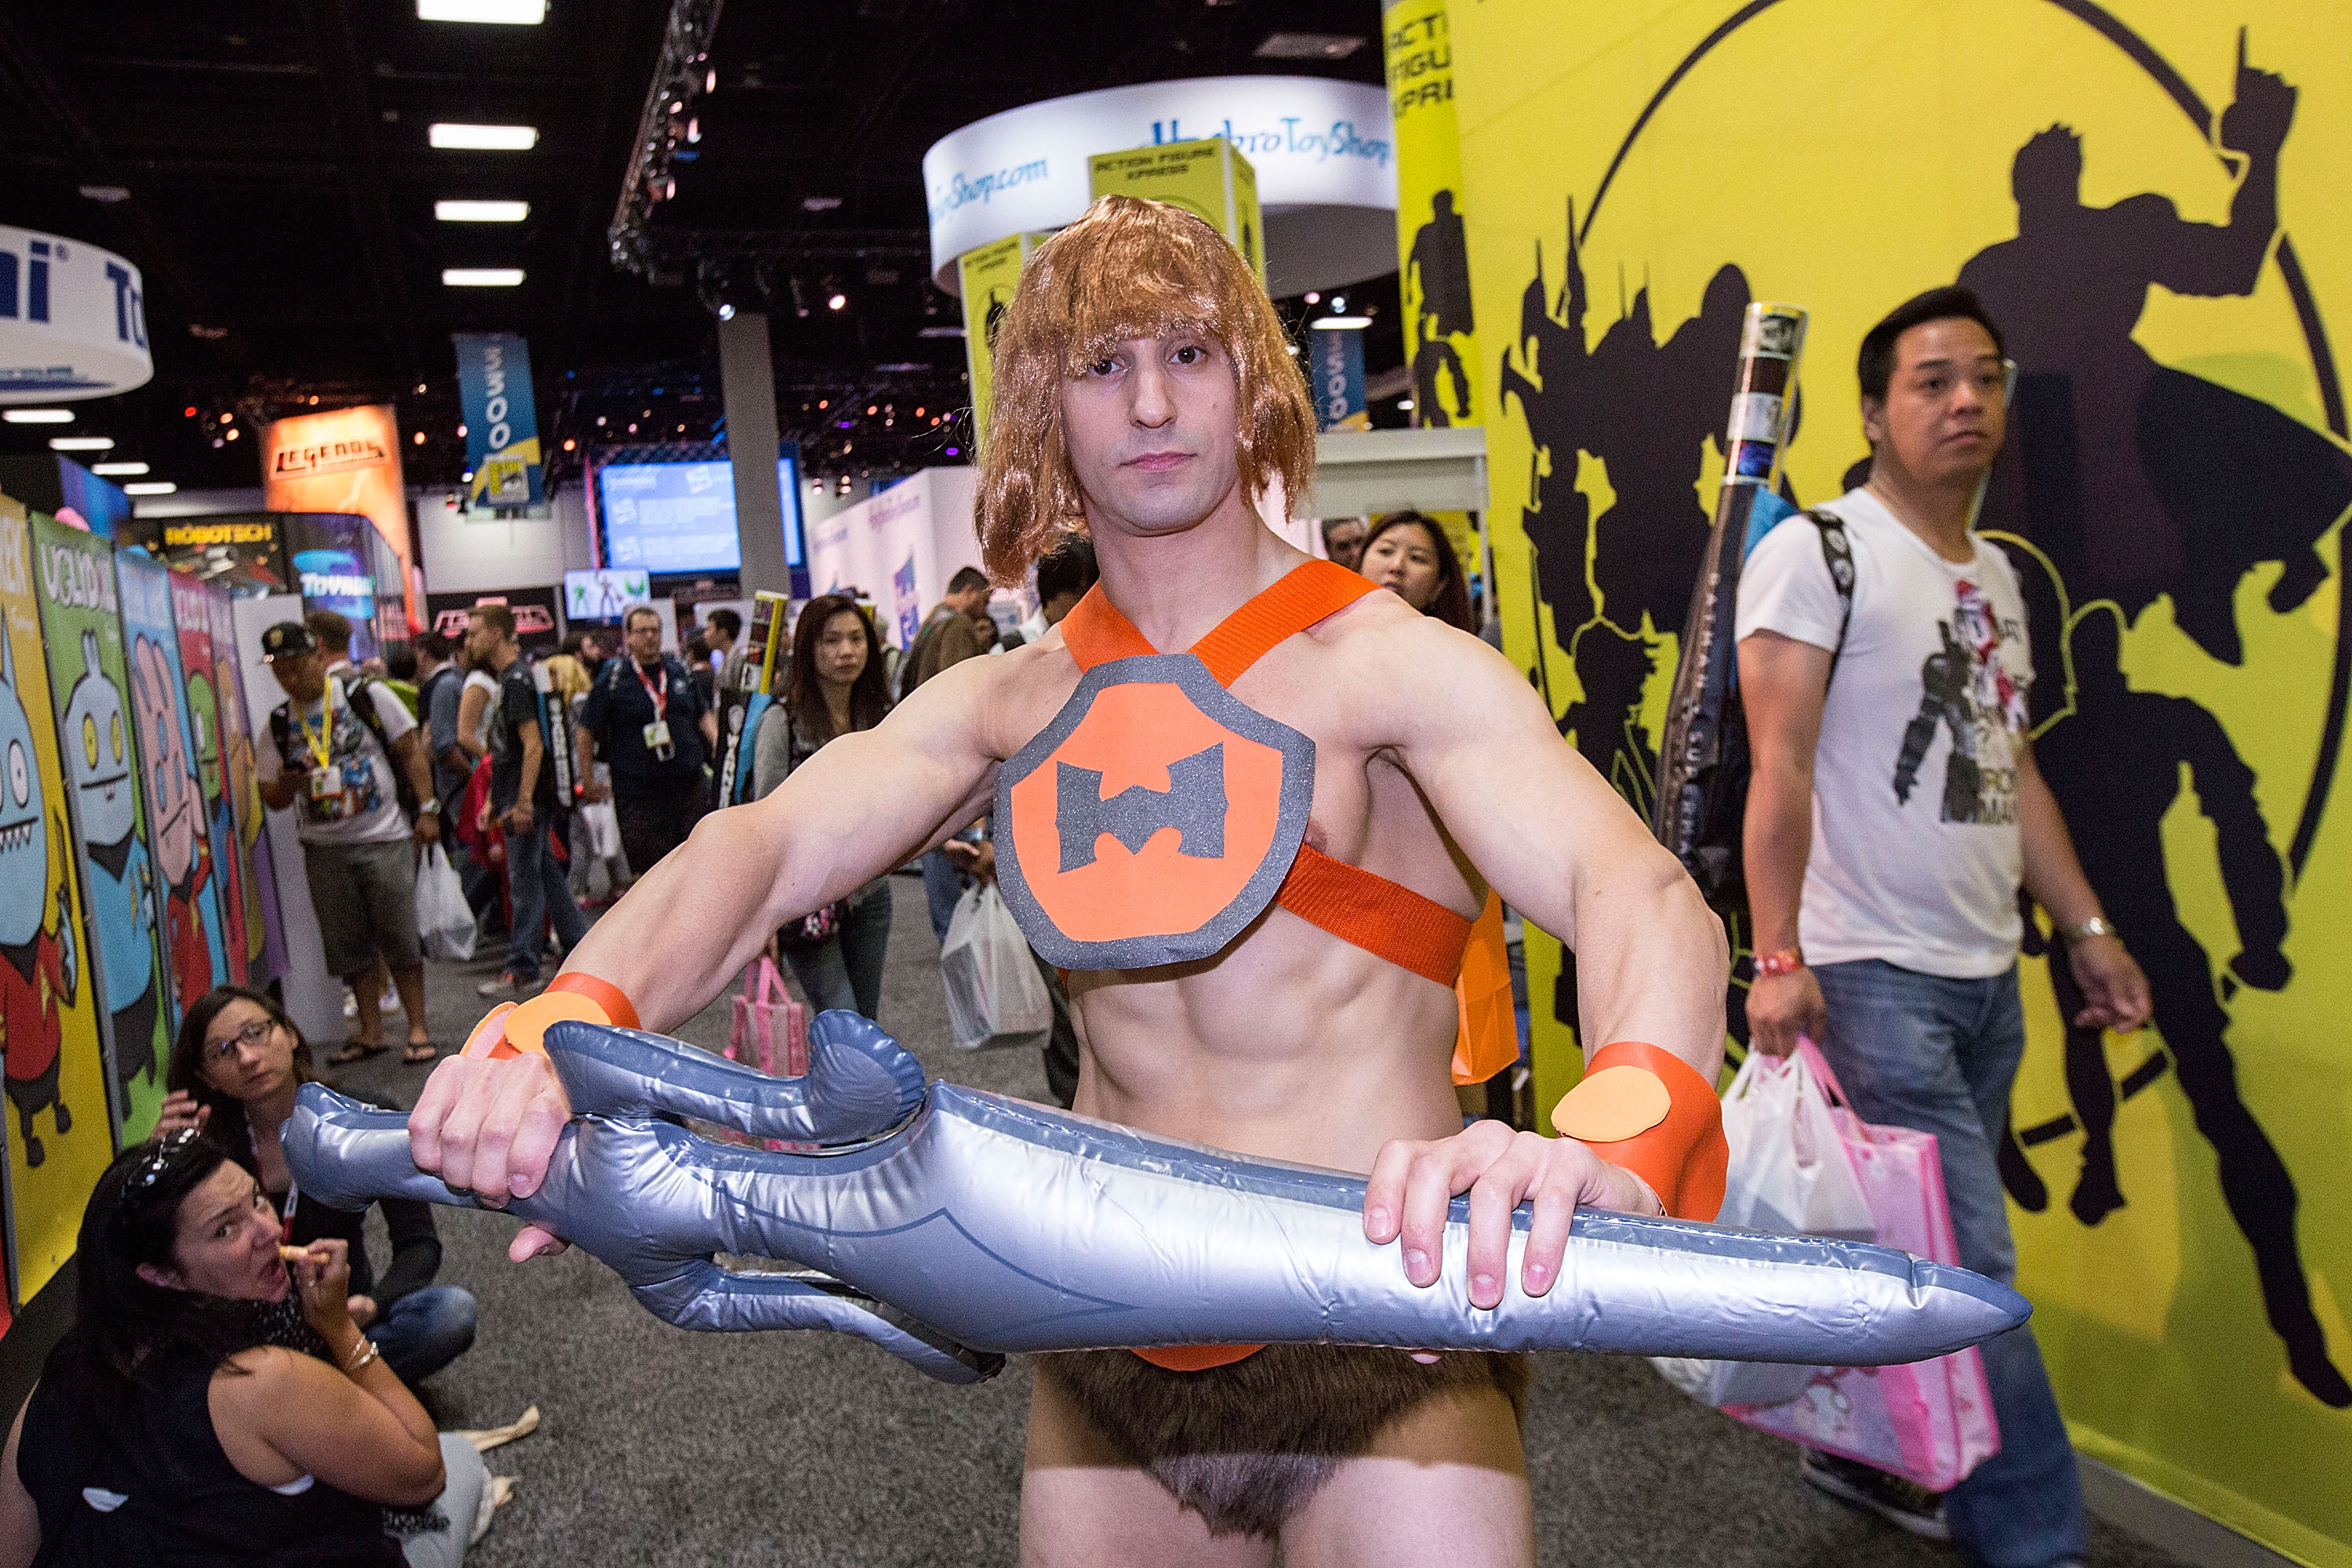 SAN DIEGO, CA - JULY 12:  A costumed fan attends Comic-Con International at San Diego Convention Center on July 12, 2015 in S